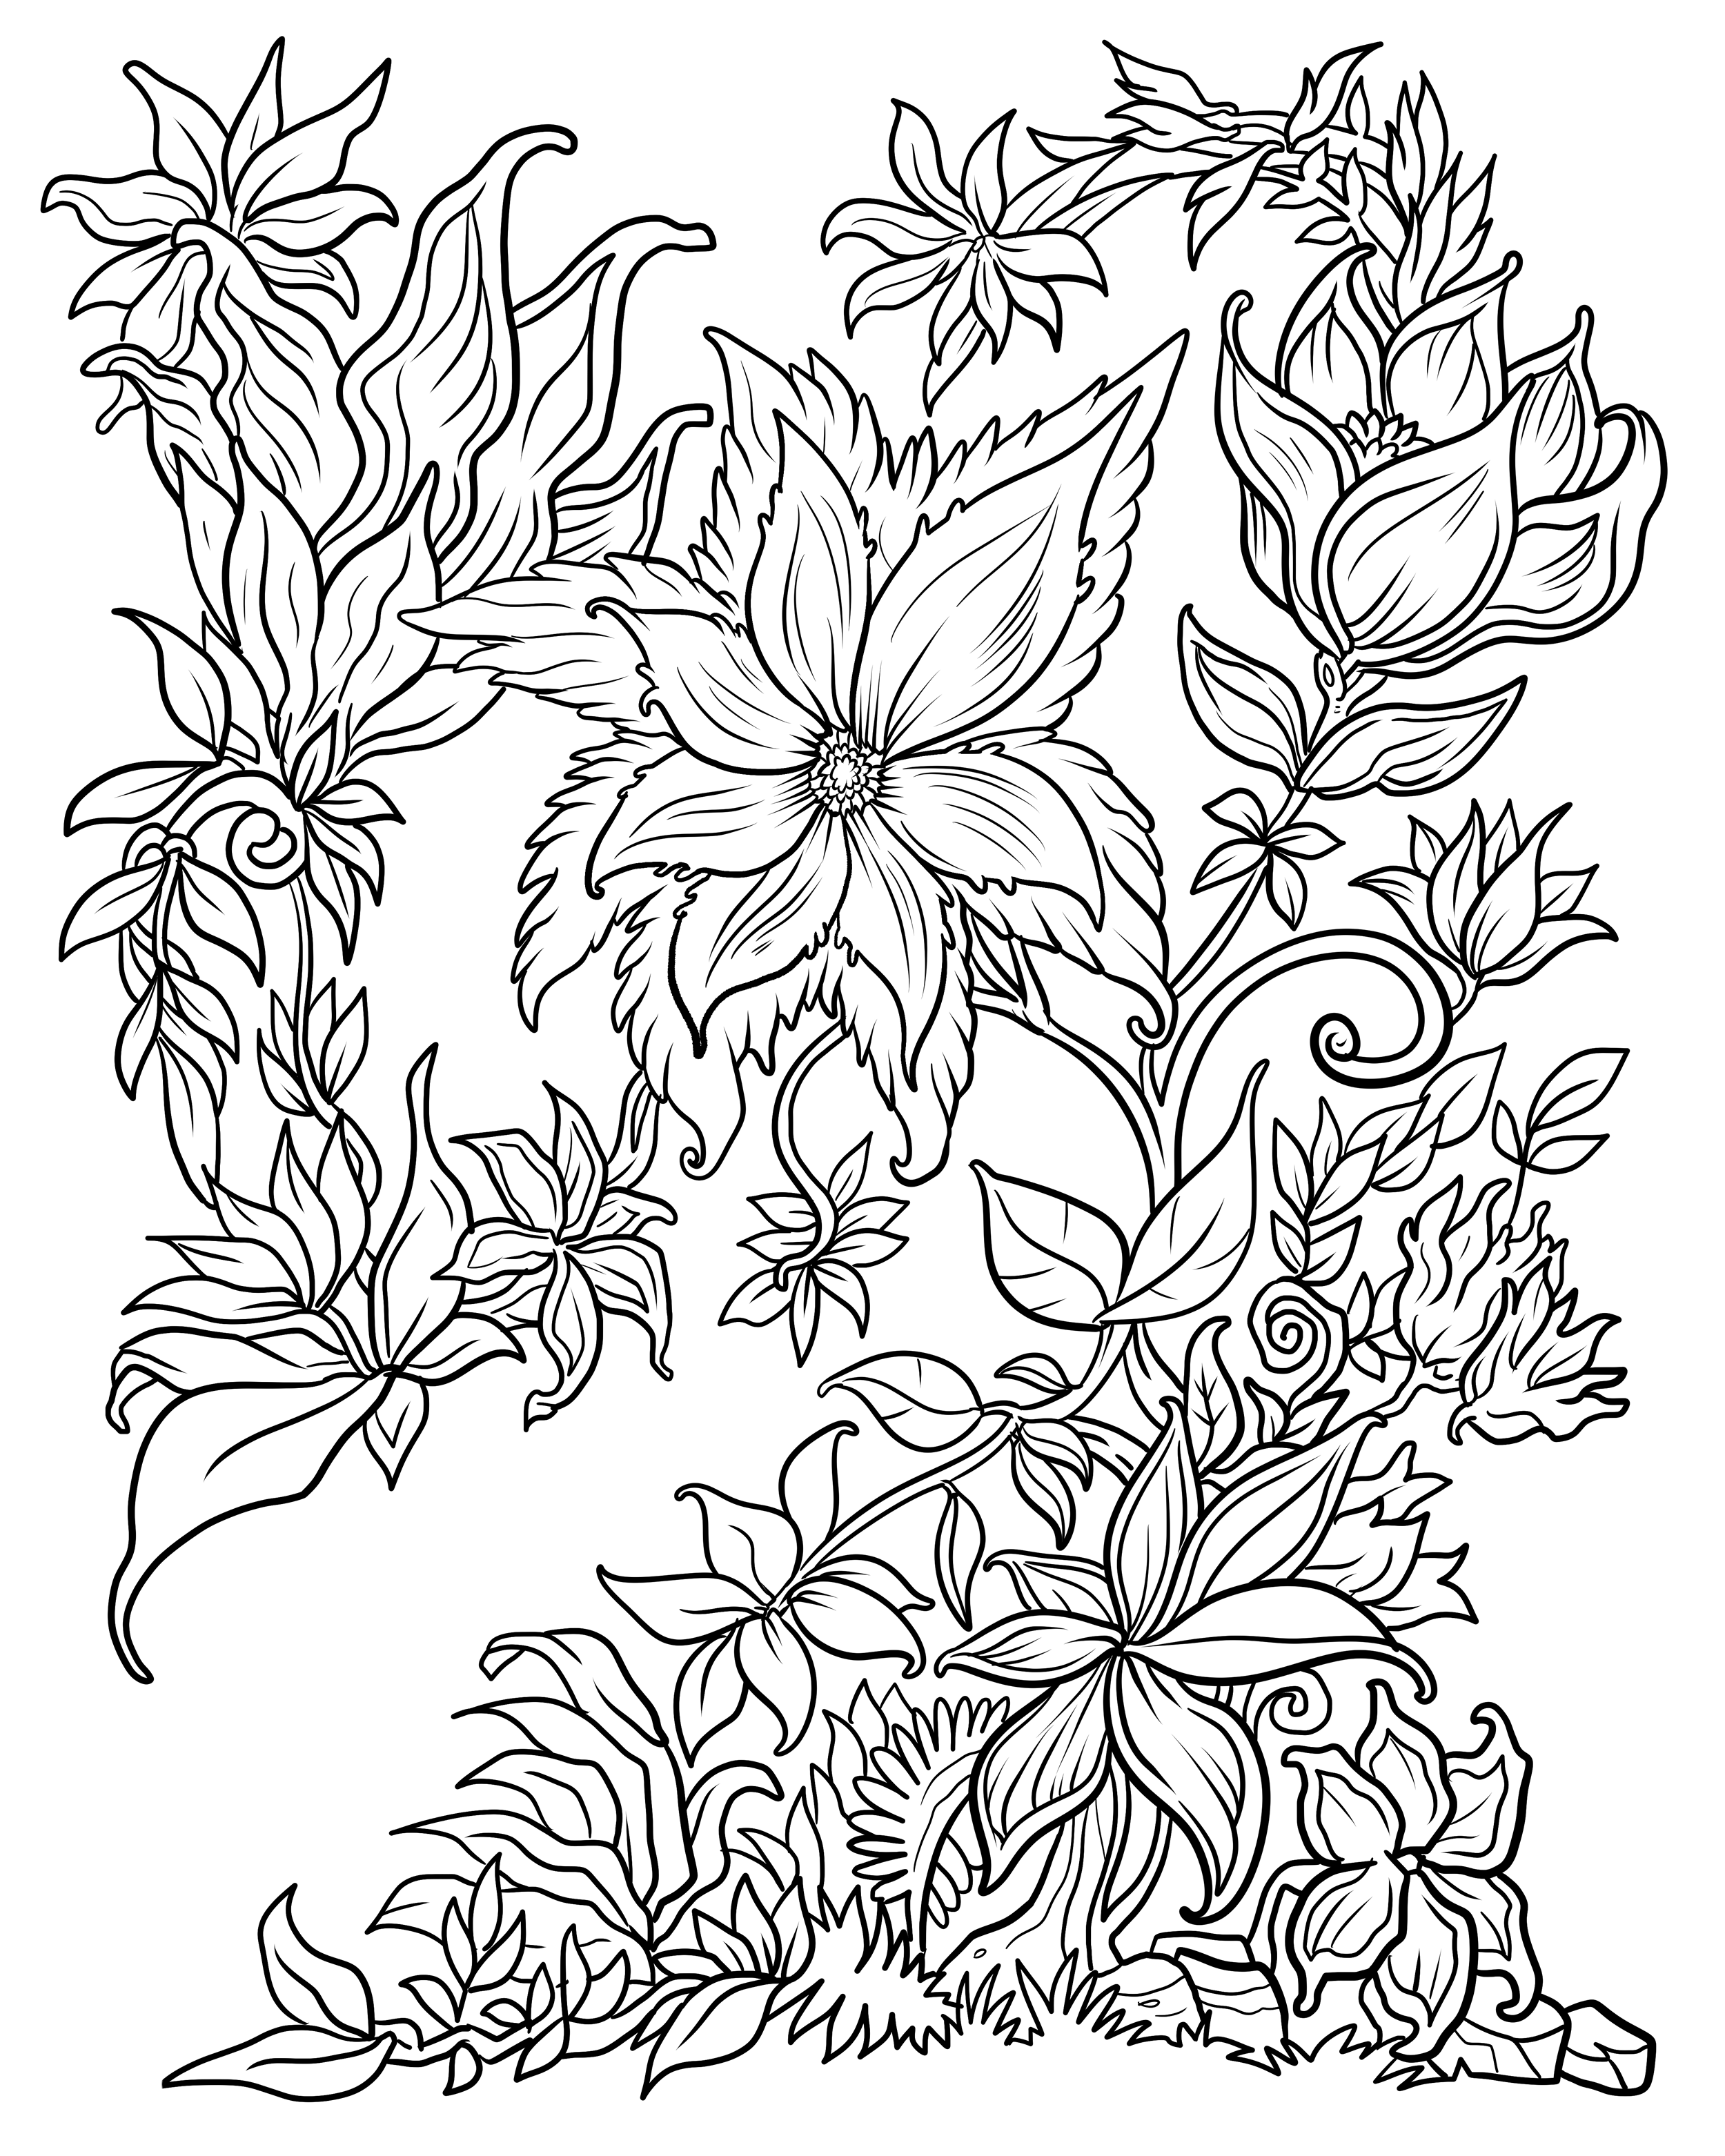 adult coloring pages online free online coloring pages for adults creatively crafting coloring adult online pages